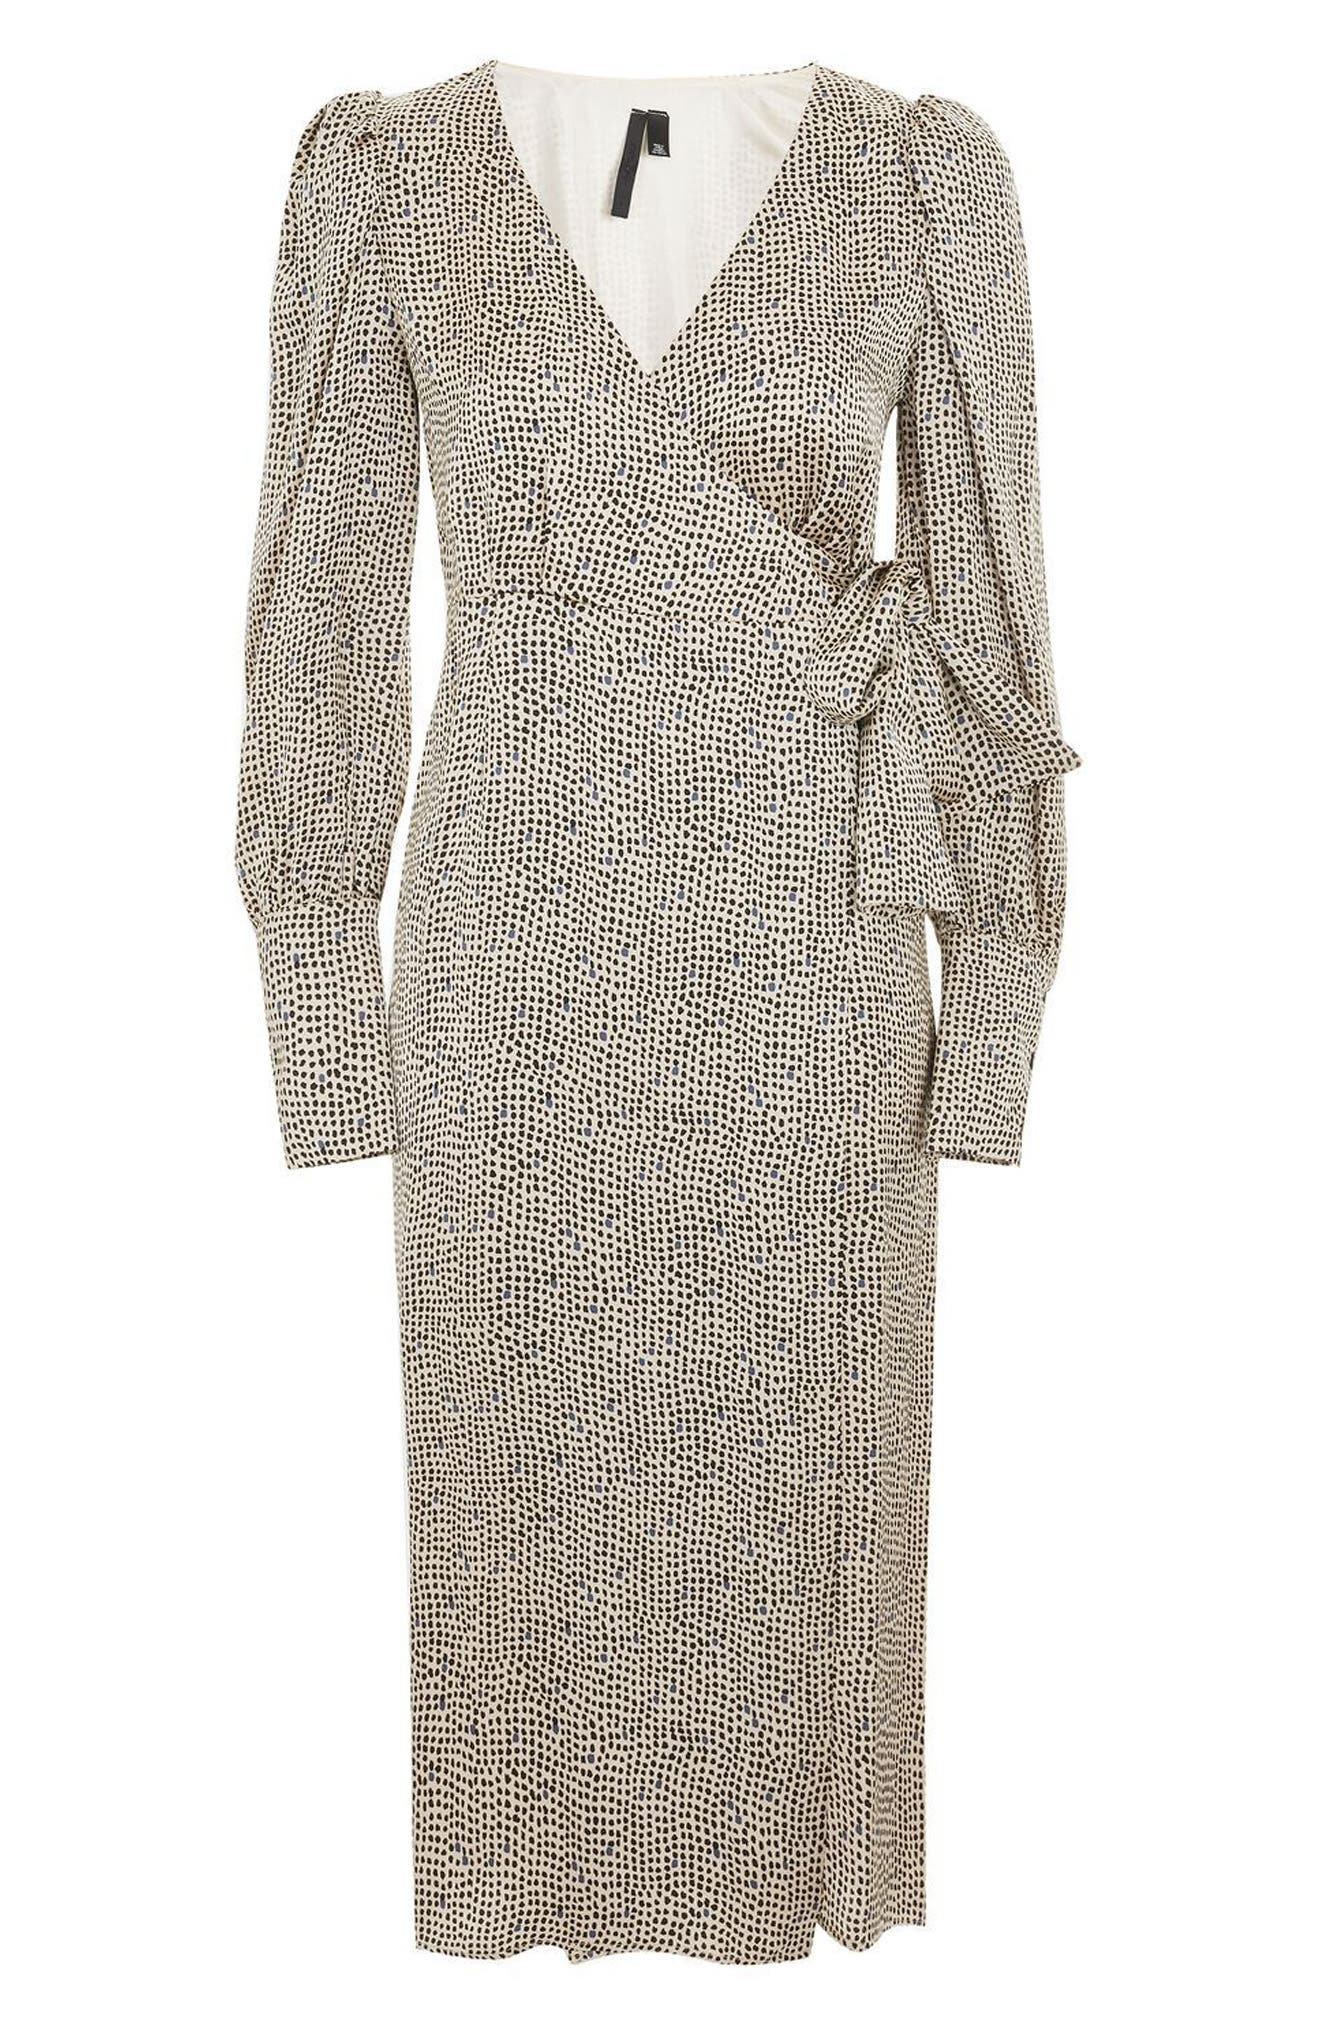 Topshop Boutique Mini Spot Wrap Dress